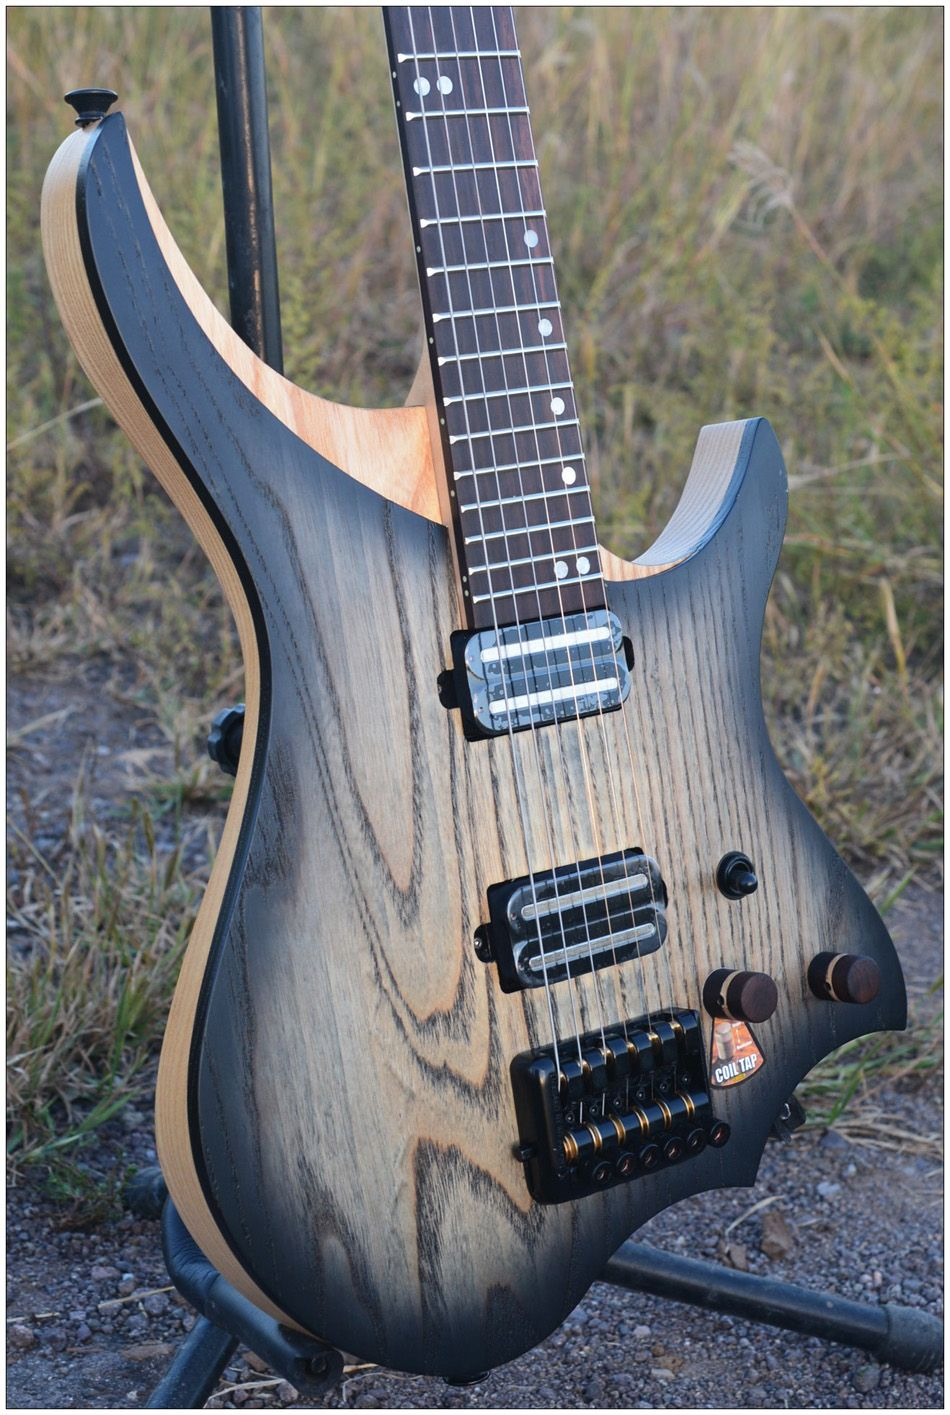 NK Headless Electric Guitar steinberger style Model Black burst color Flame maple Neck in stock Guitar free shipping